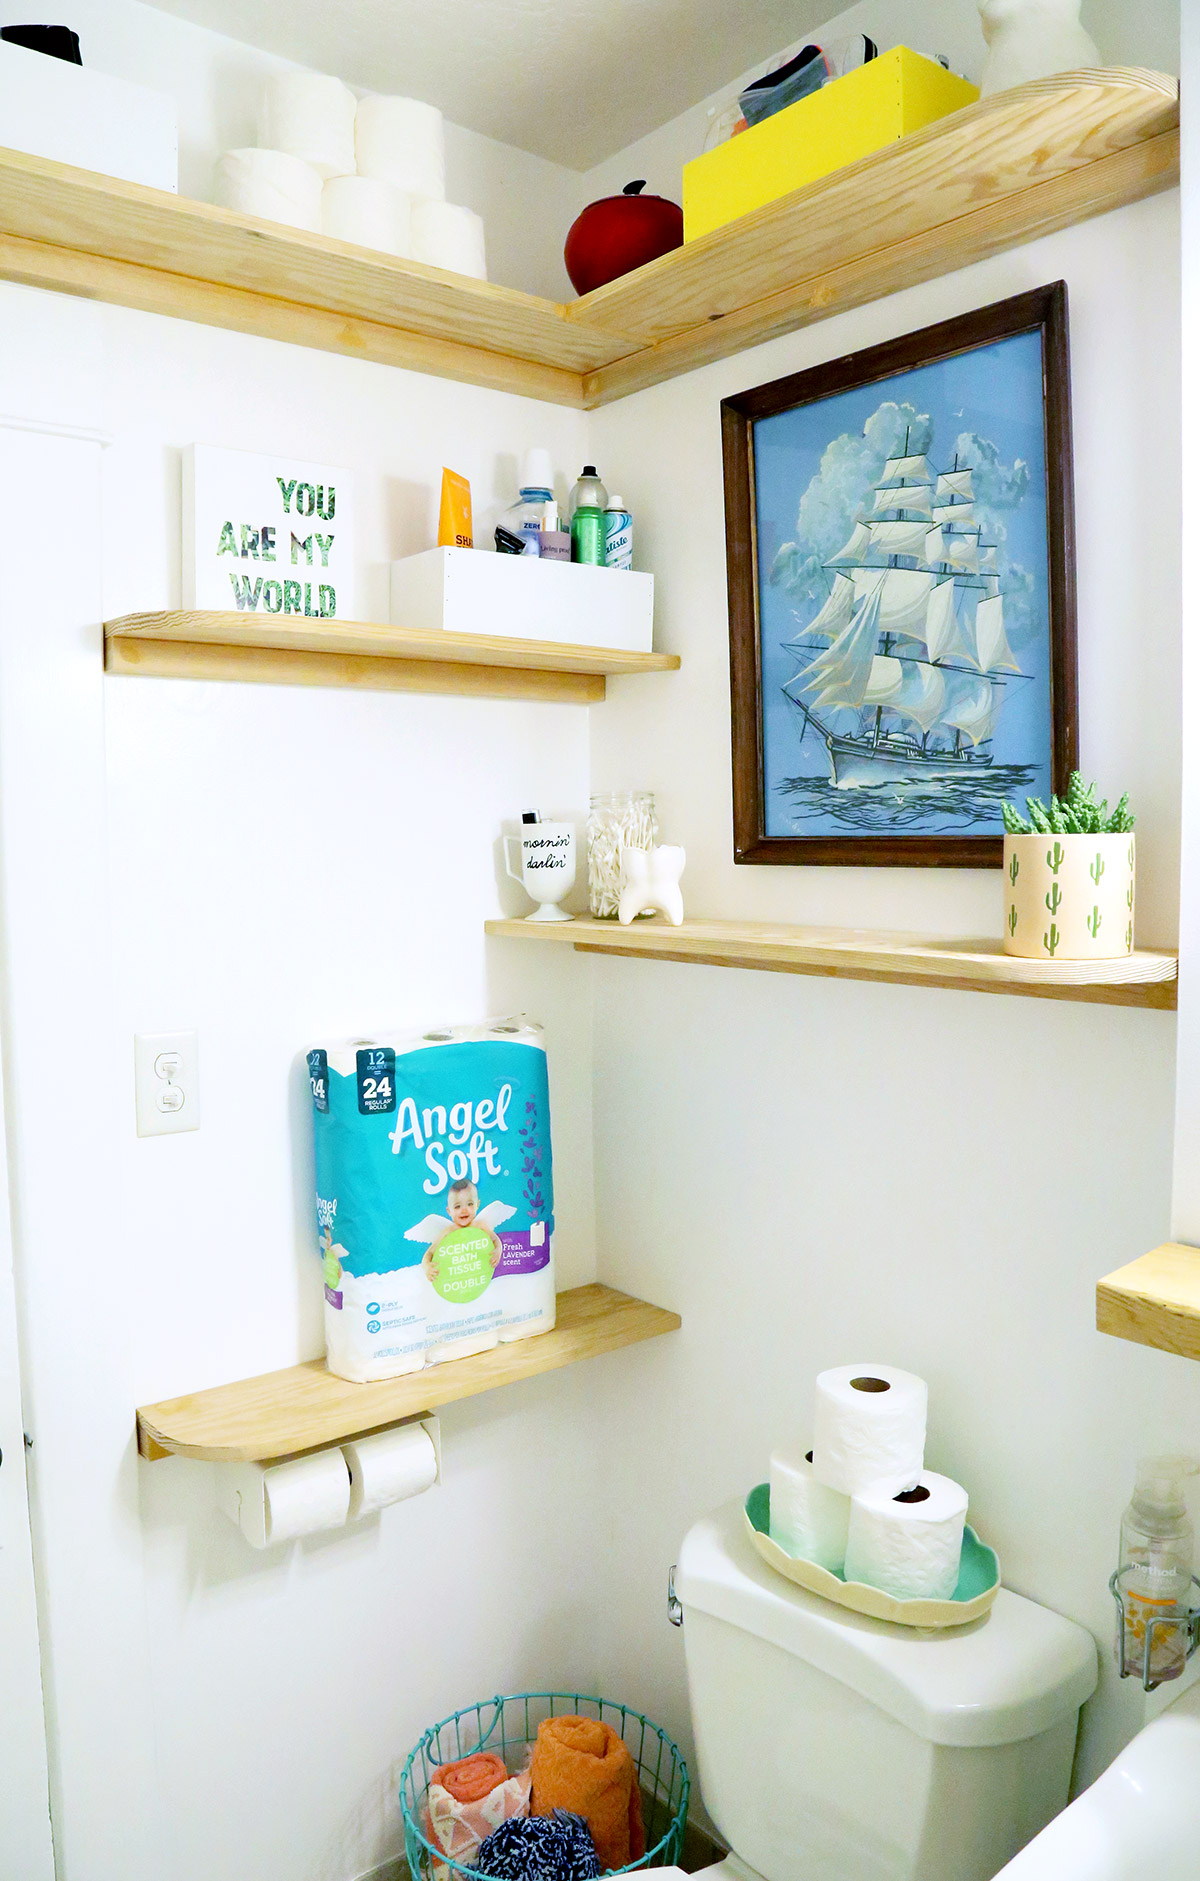 DIY Faux Floating Bathroom Shelves - corner view of shelves in bathroom.